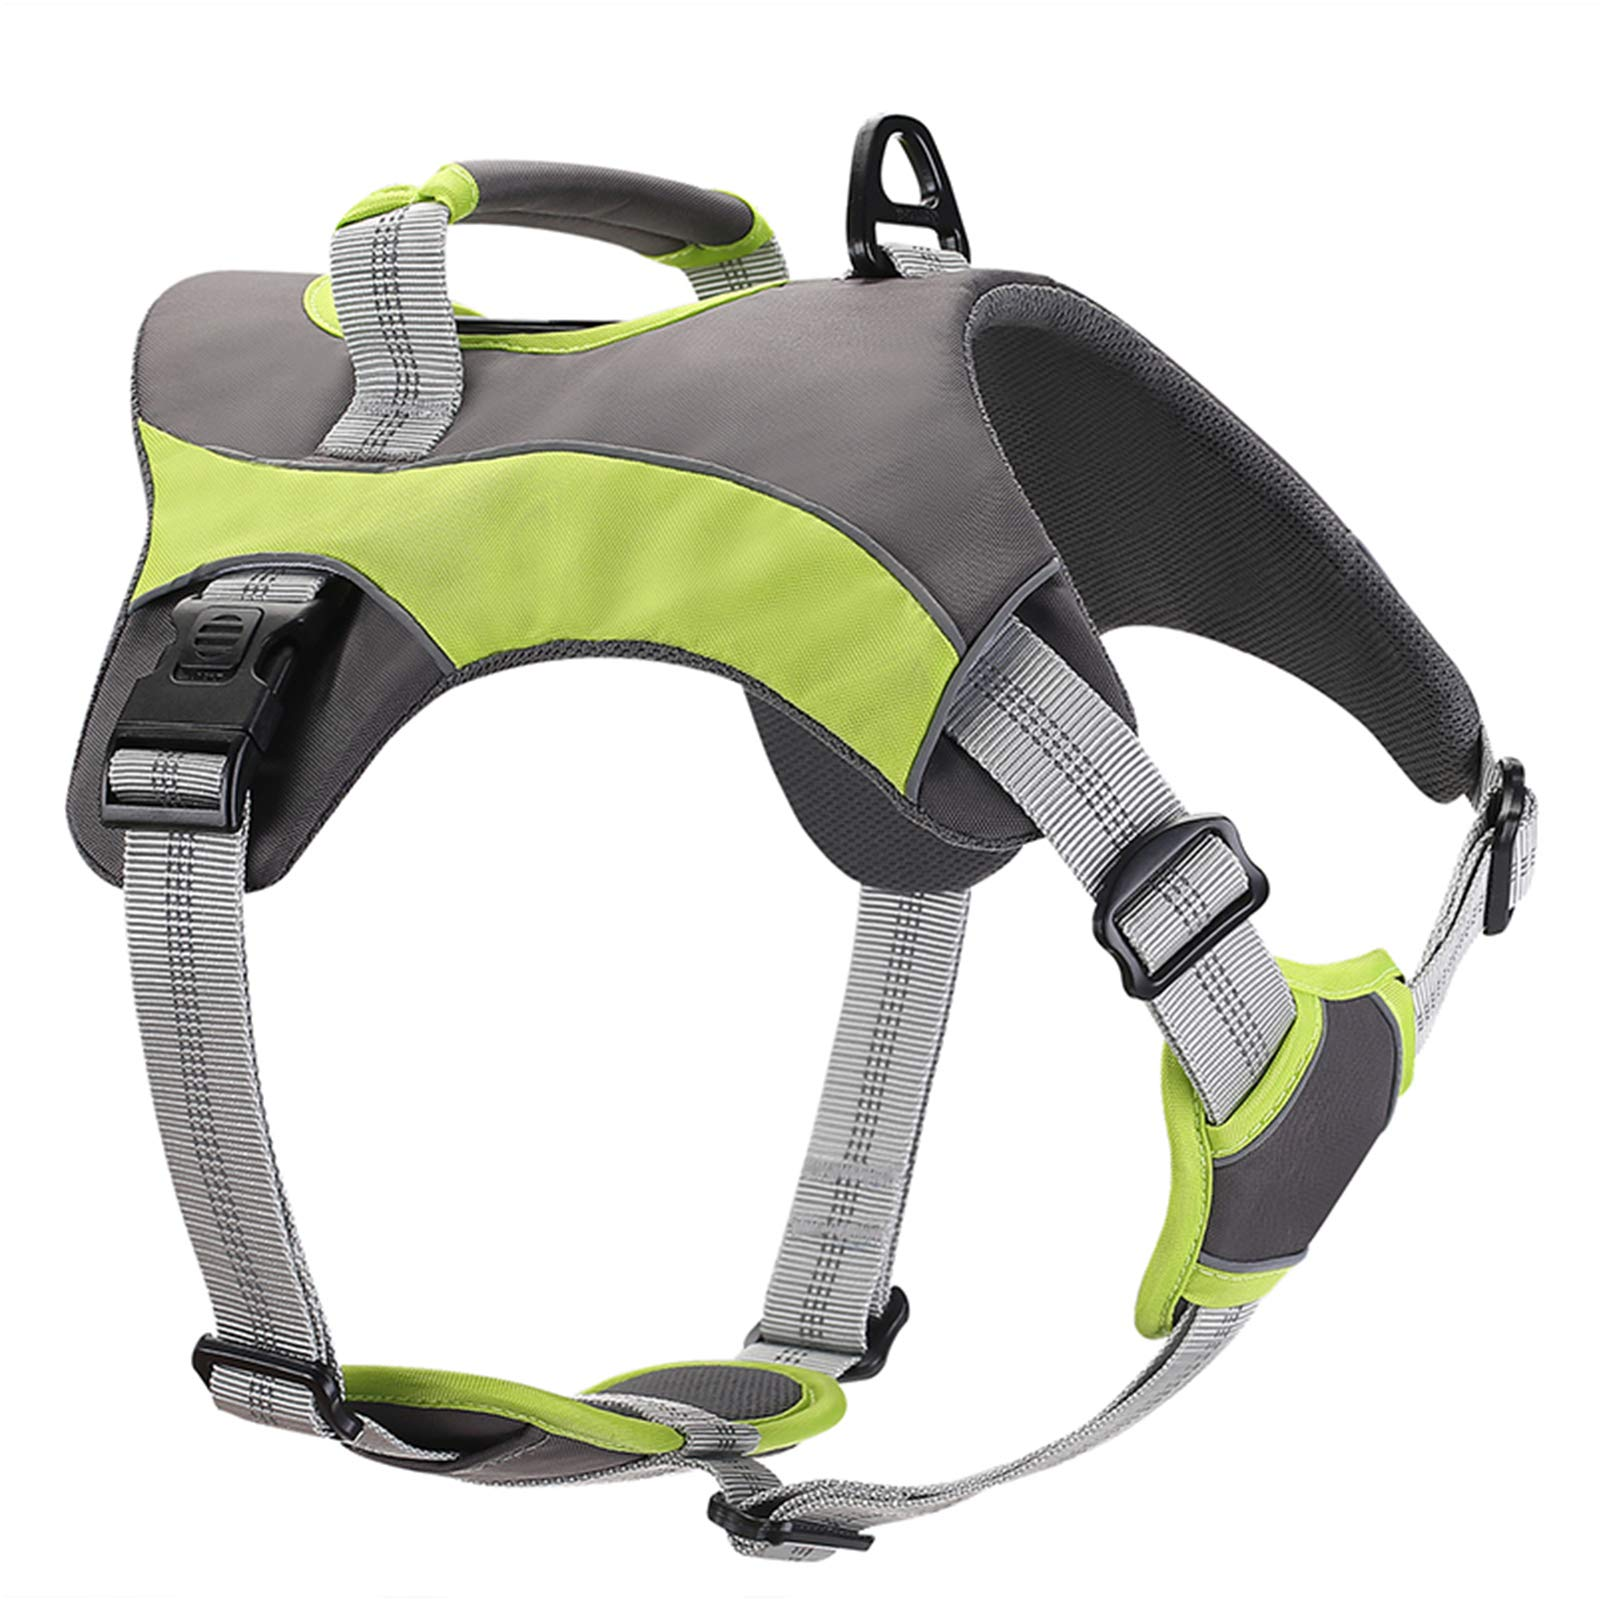 BLINGDARO Dog Harness , No Pull Harness for Large Dogs with Handle , Reflective Adjustable Vest Harnesses for Outdoor Walking Training (L:53.4-71.1CM (21-28''), Green)